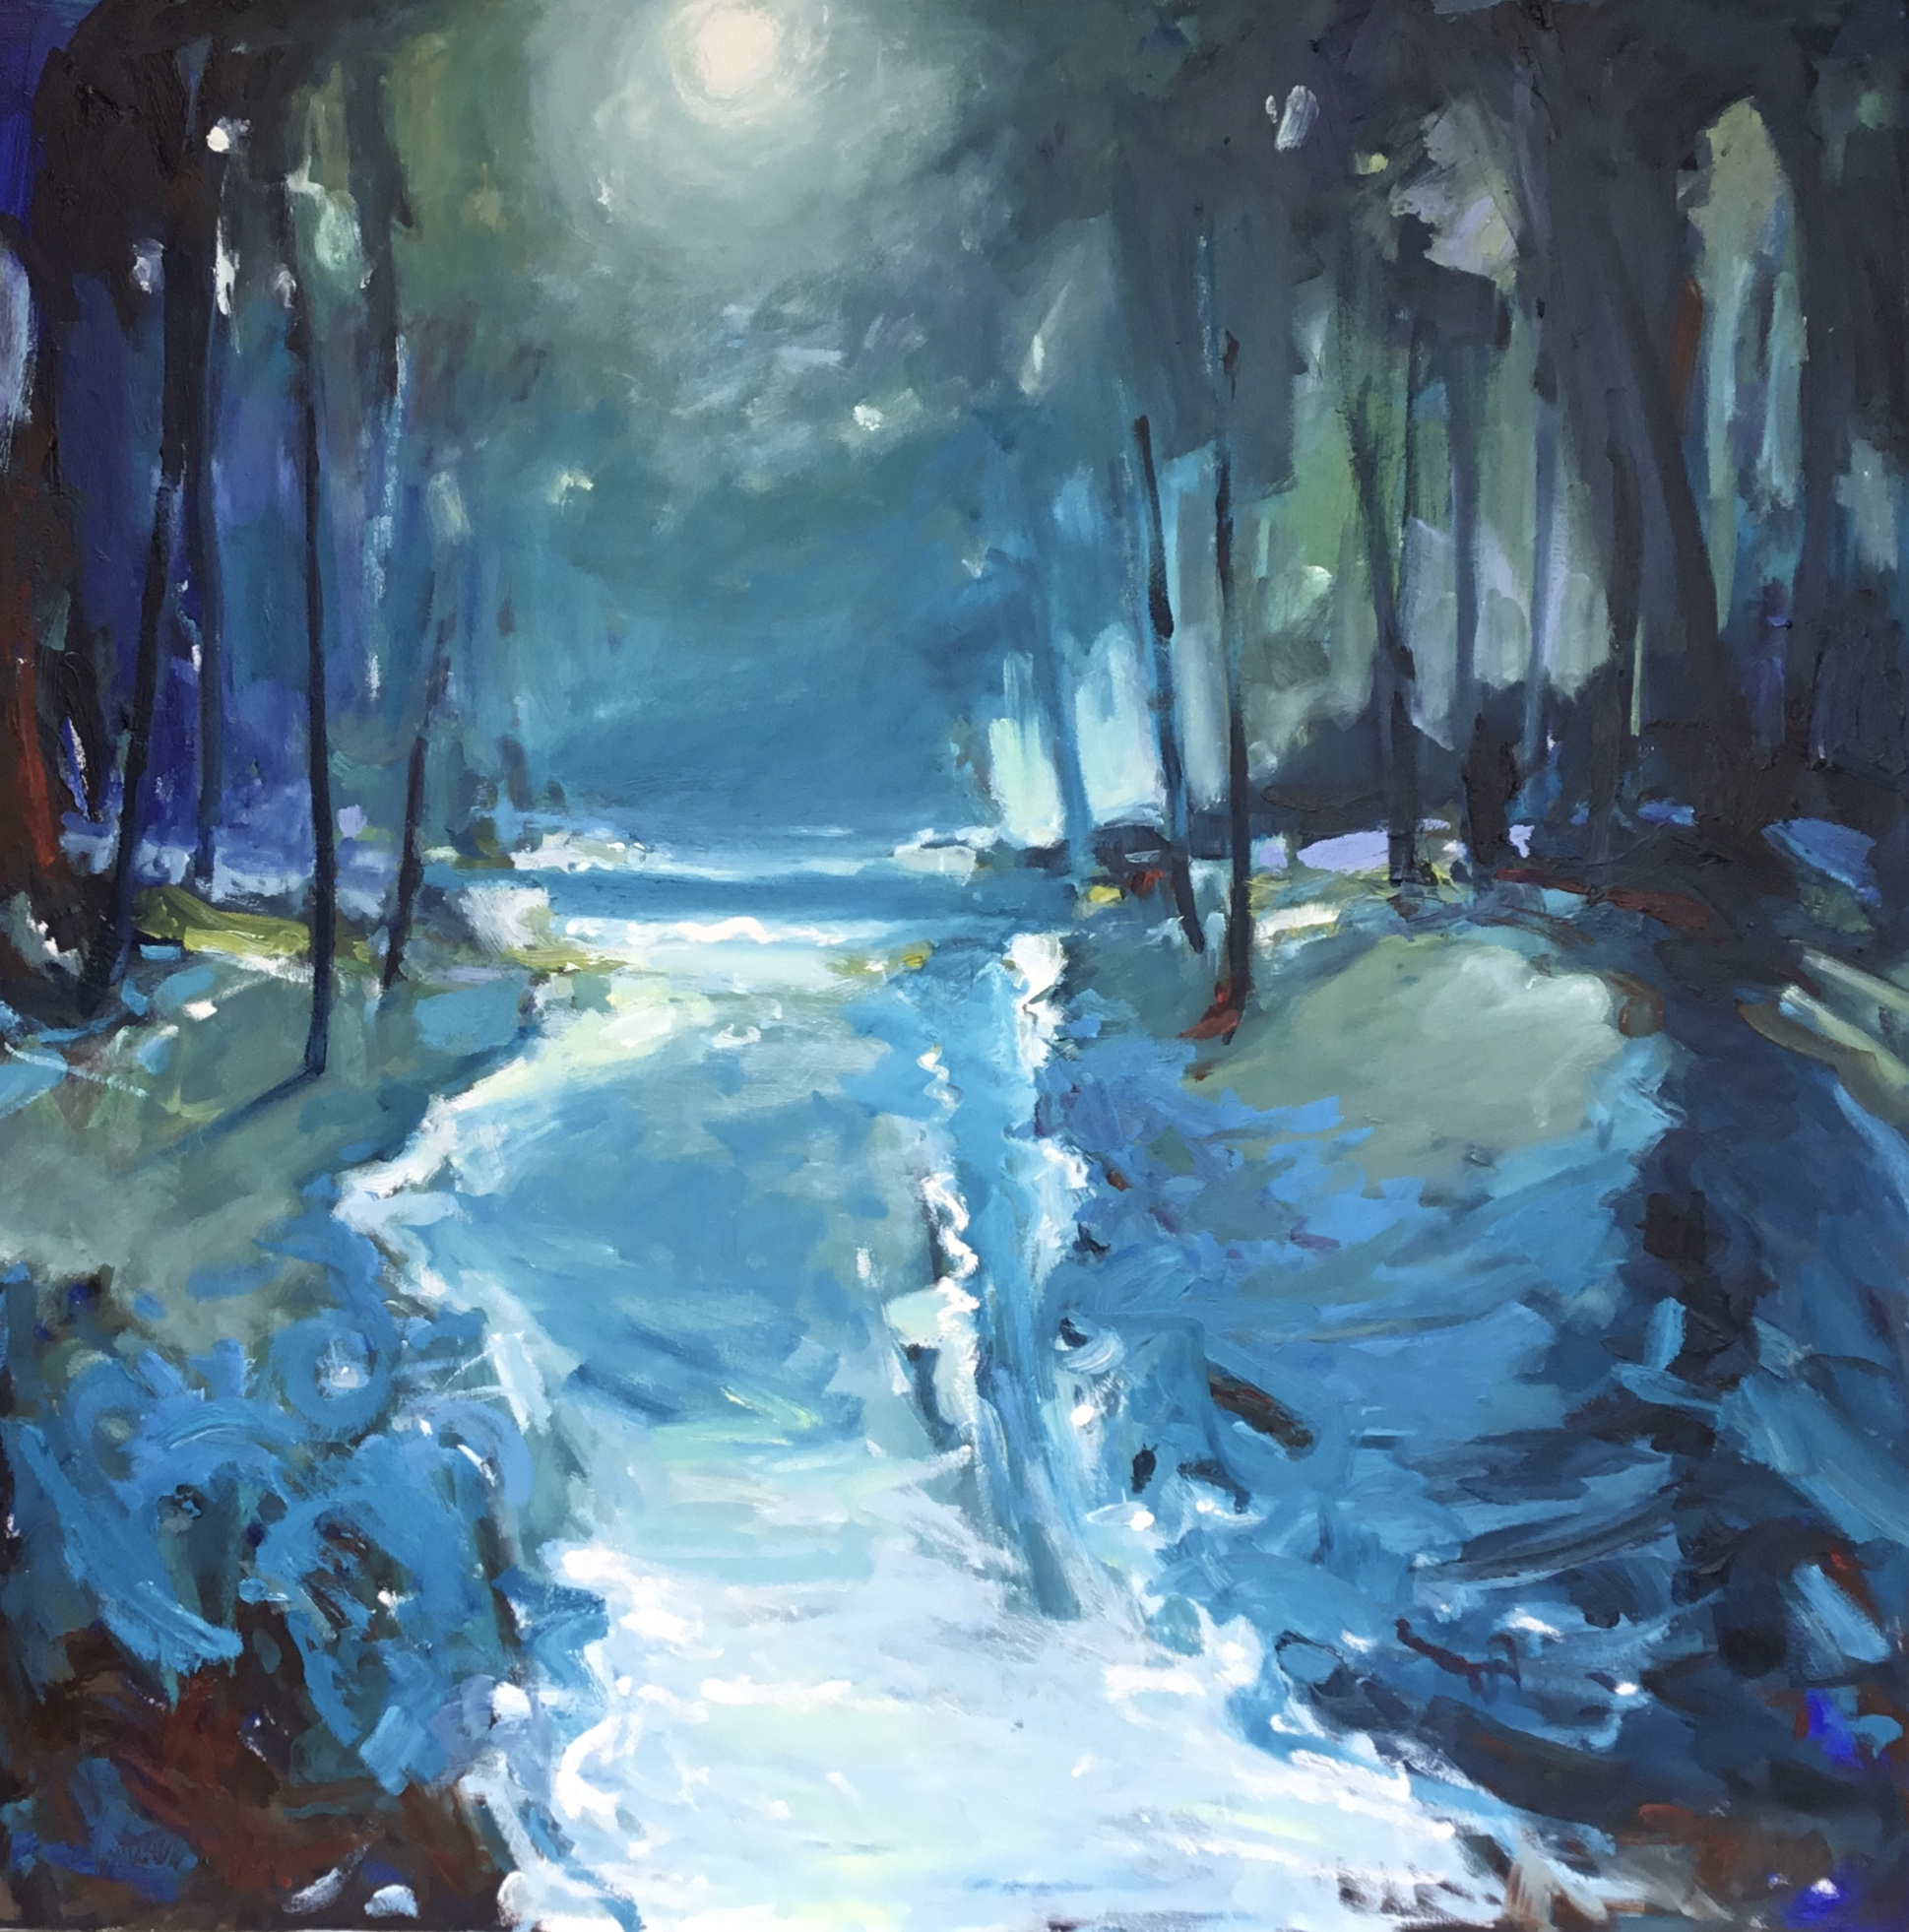 Moonlight, oil painting by Carol Finkbeiner Thomas | Effusion Art Gallery + Cast Glass Studio, Invermere BC